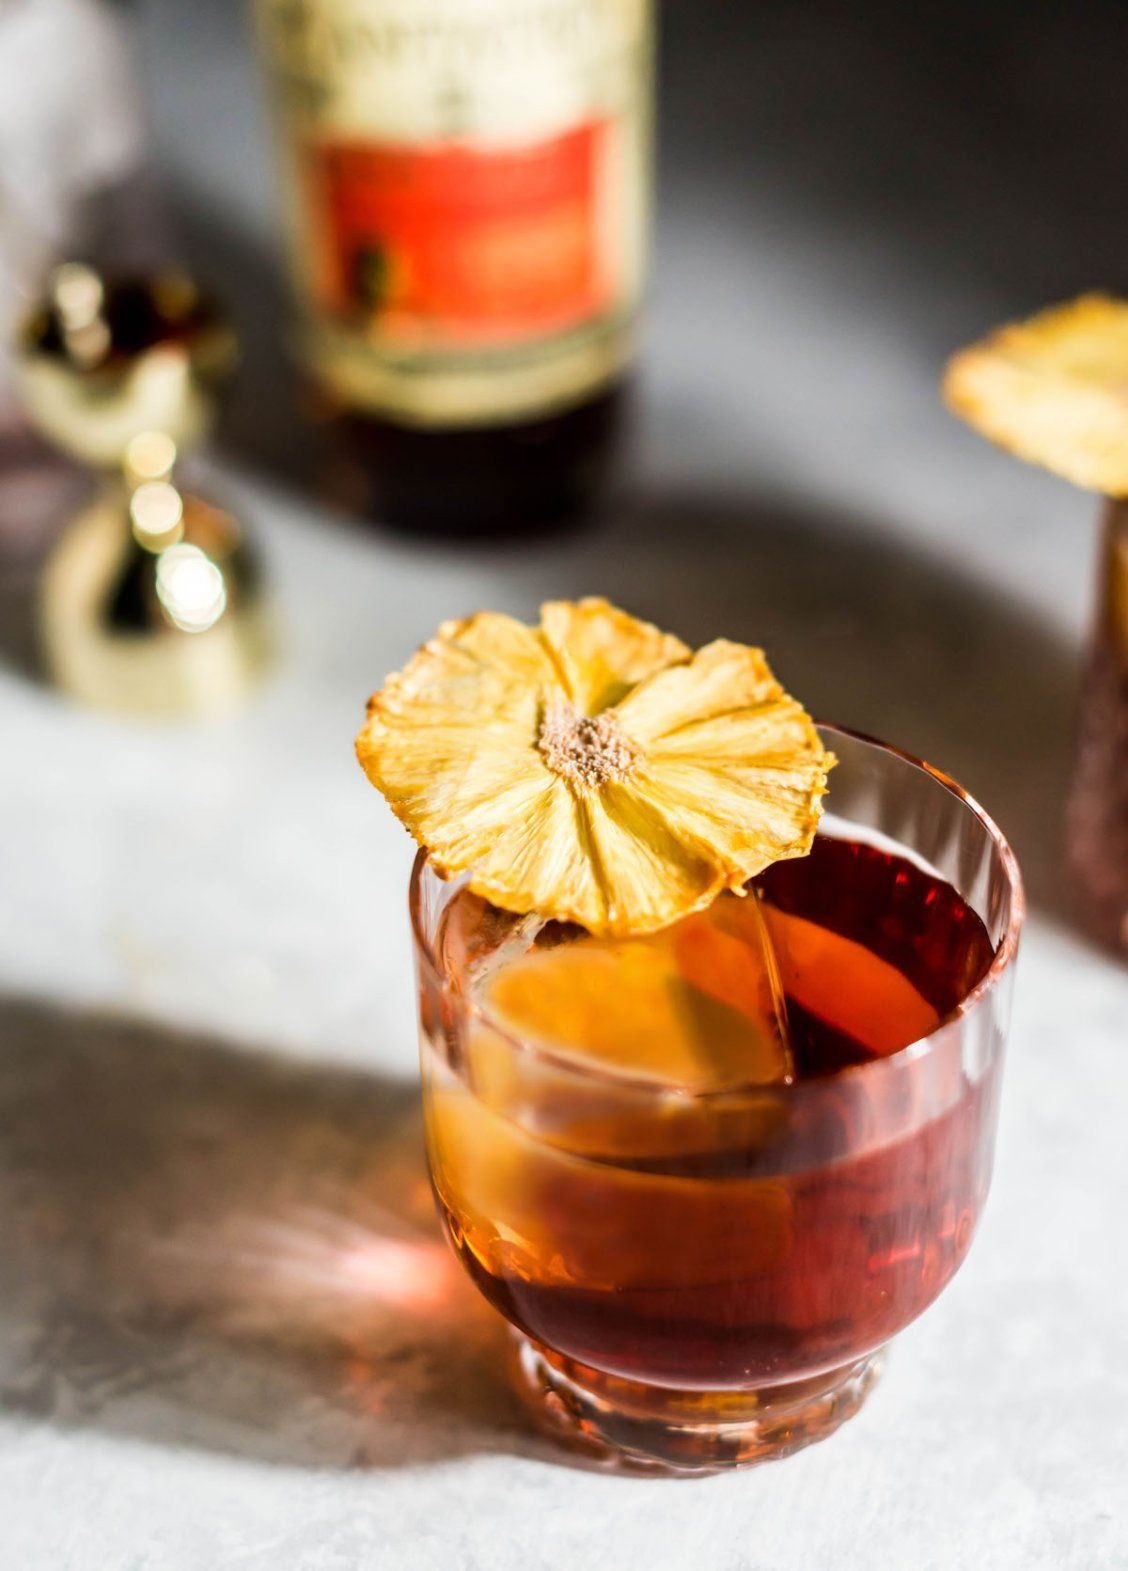 Coco Banana Pineapple Rum Old Fashioned (With images ...